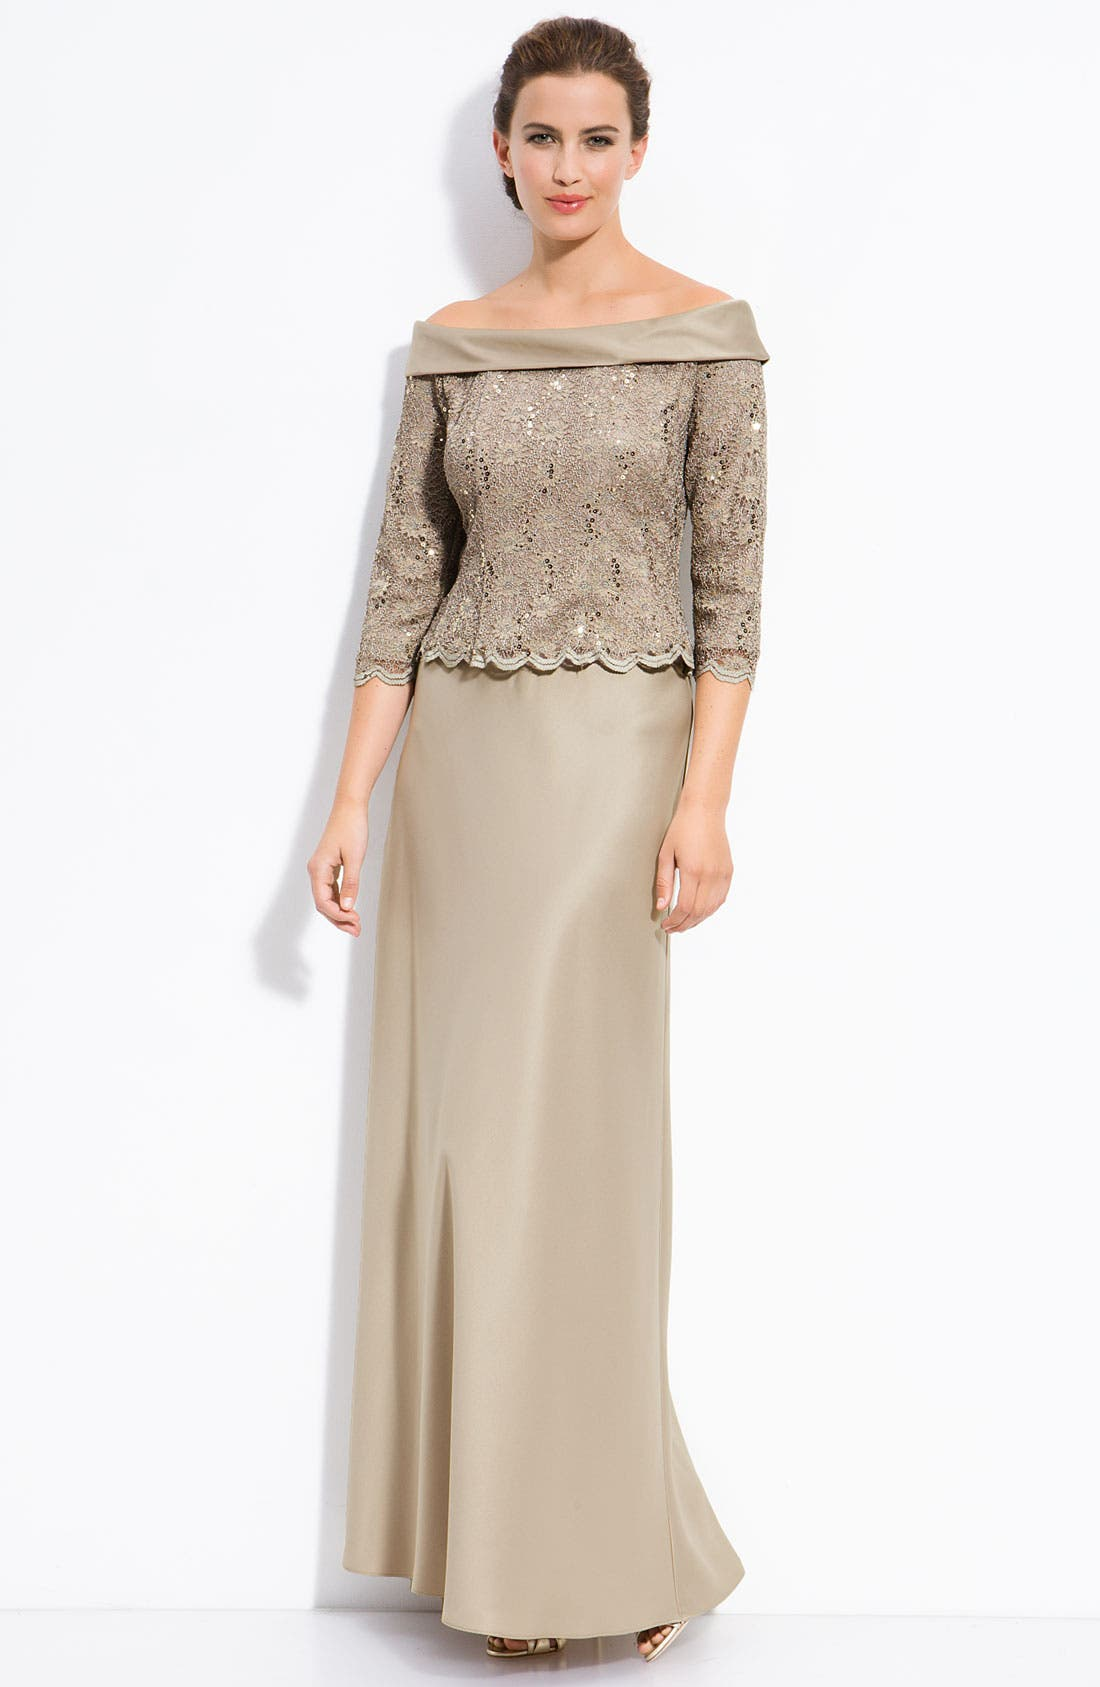 Main Image - Alex Evenings Off the Shoulder Lace Top with Satin Skirt